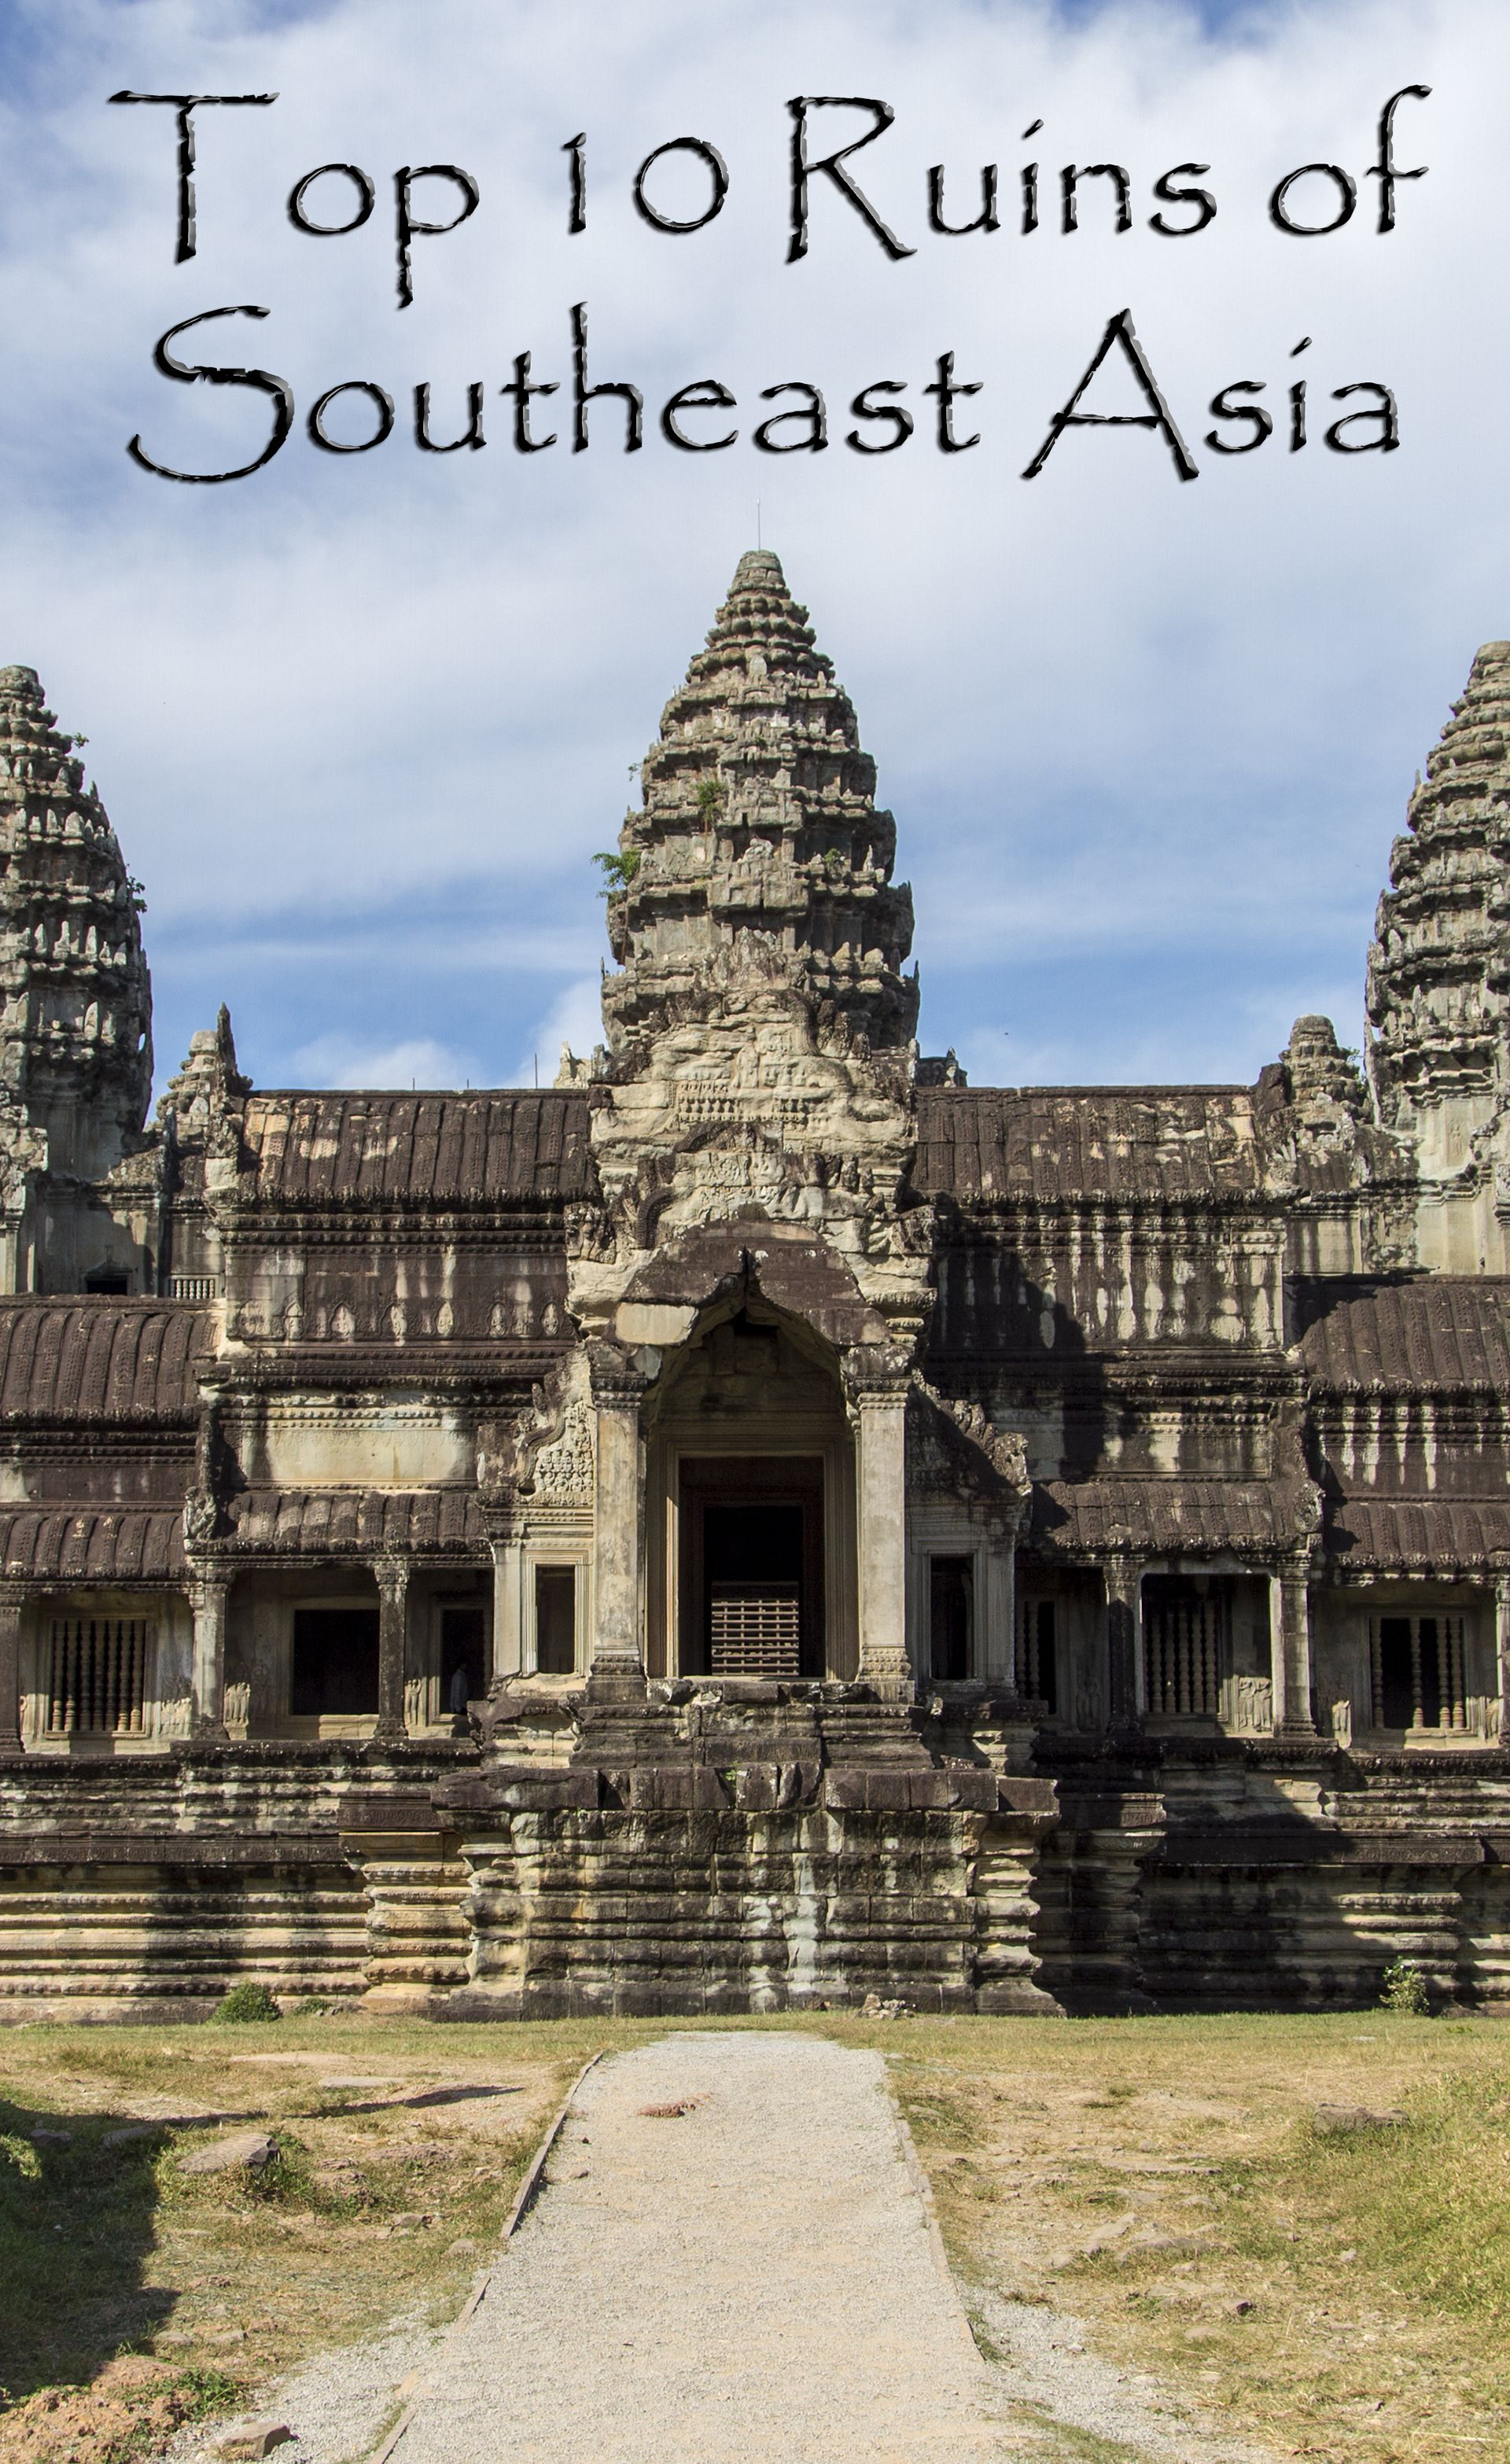 10 temples of Southeast Asia